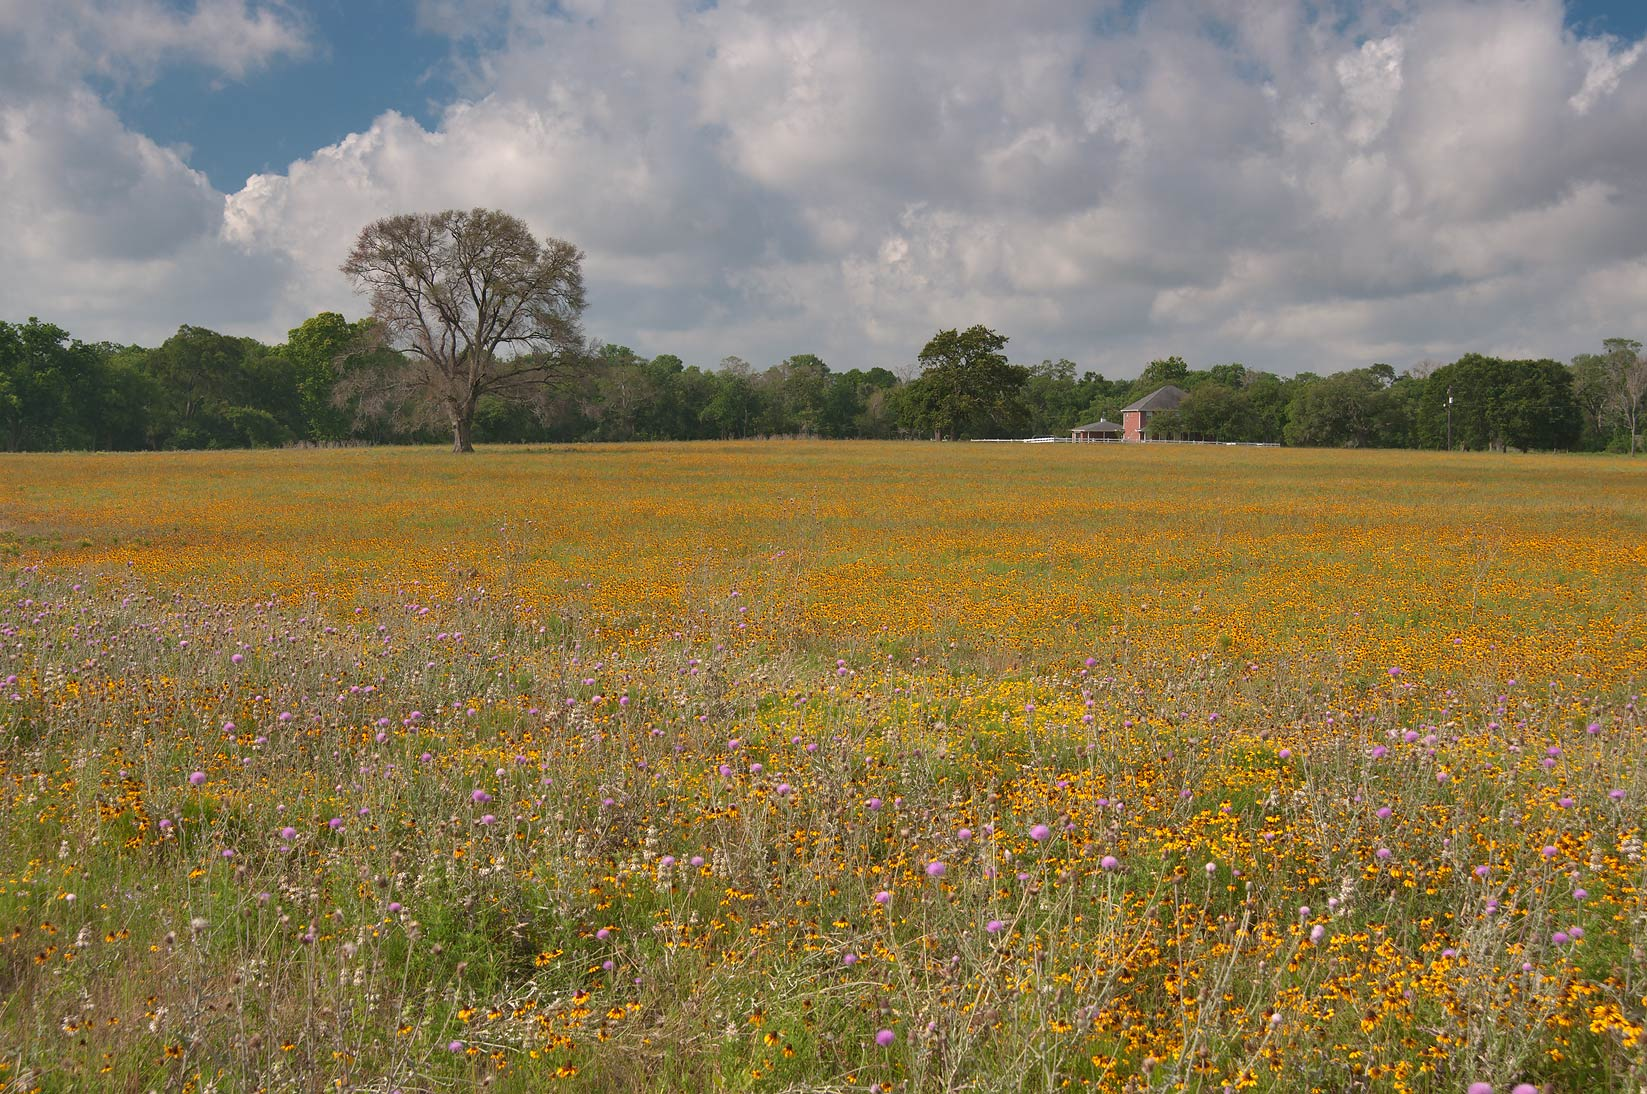 Field of yellow flowers from Rd. 159 near Millican. Texas